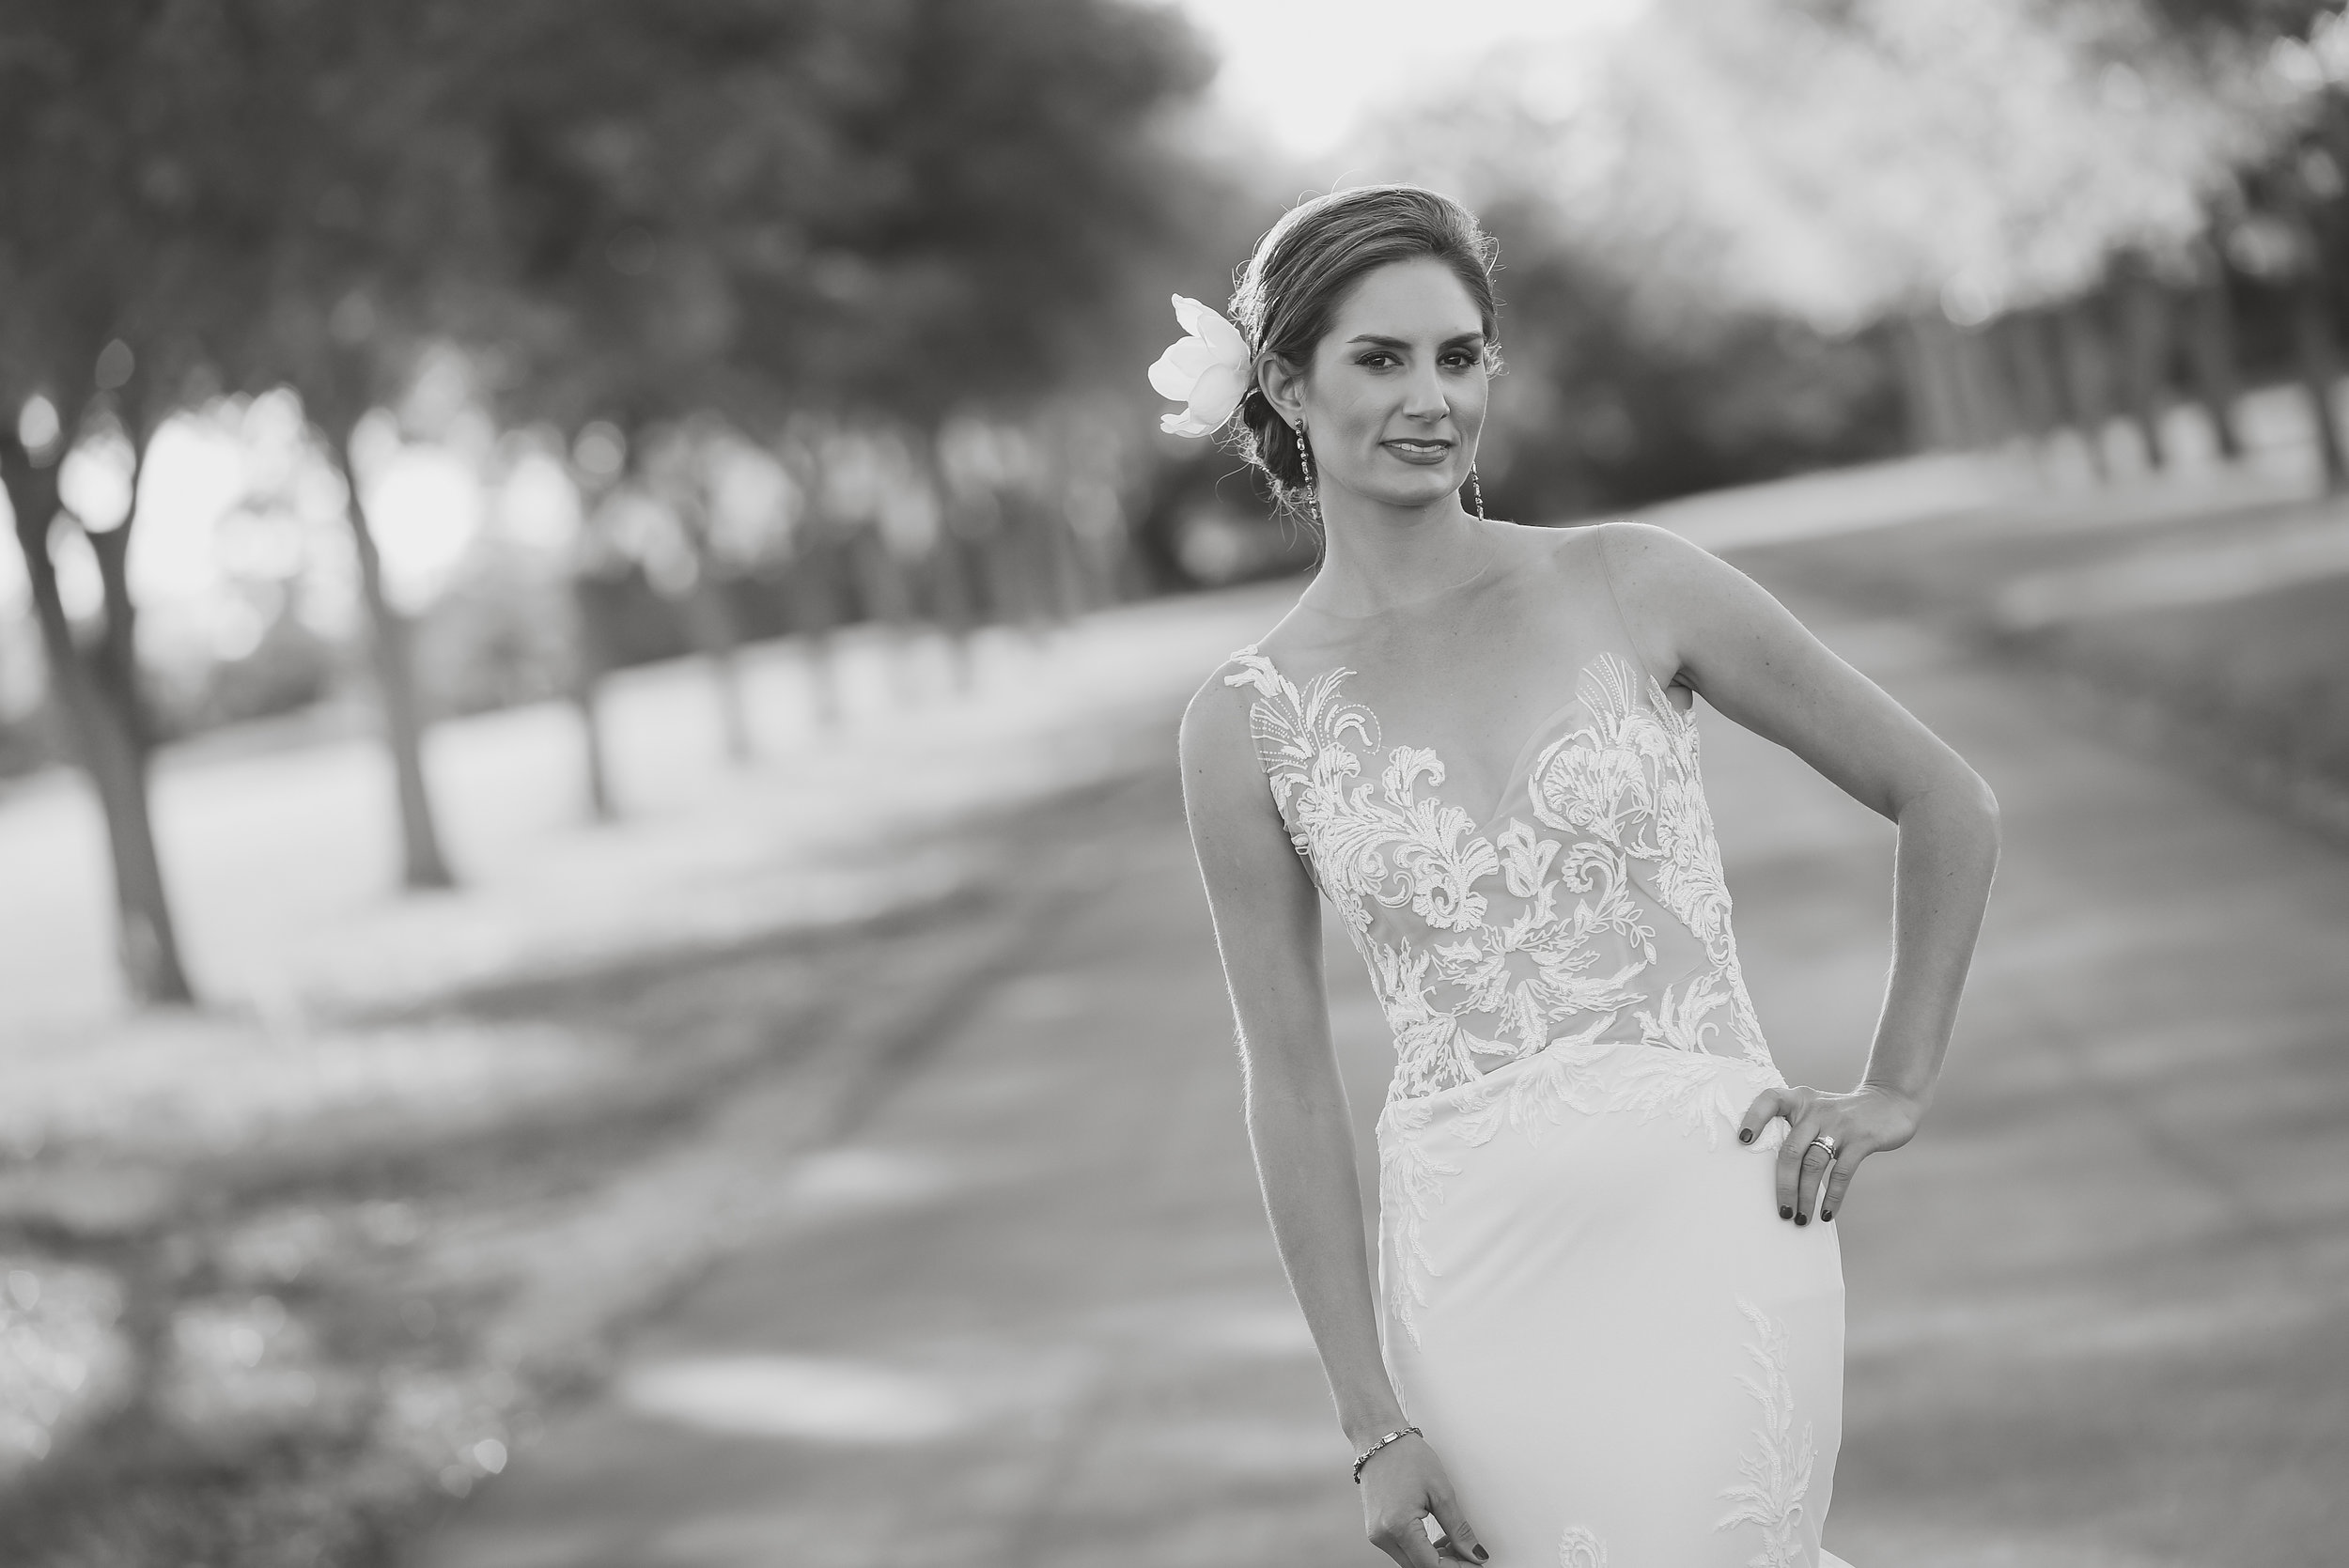 Bride wearing Ines Di Santo wedding gown with lace and one shoulder detail